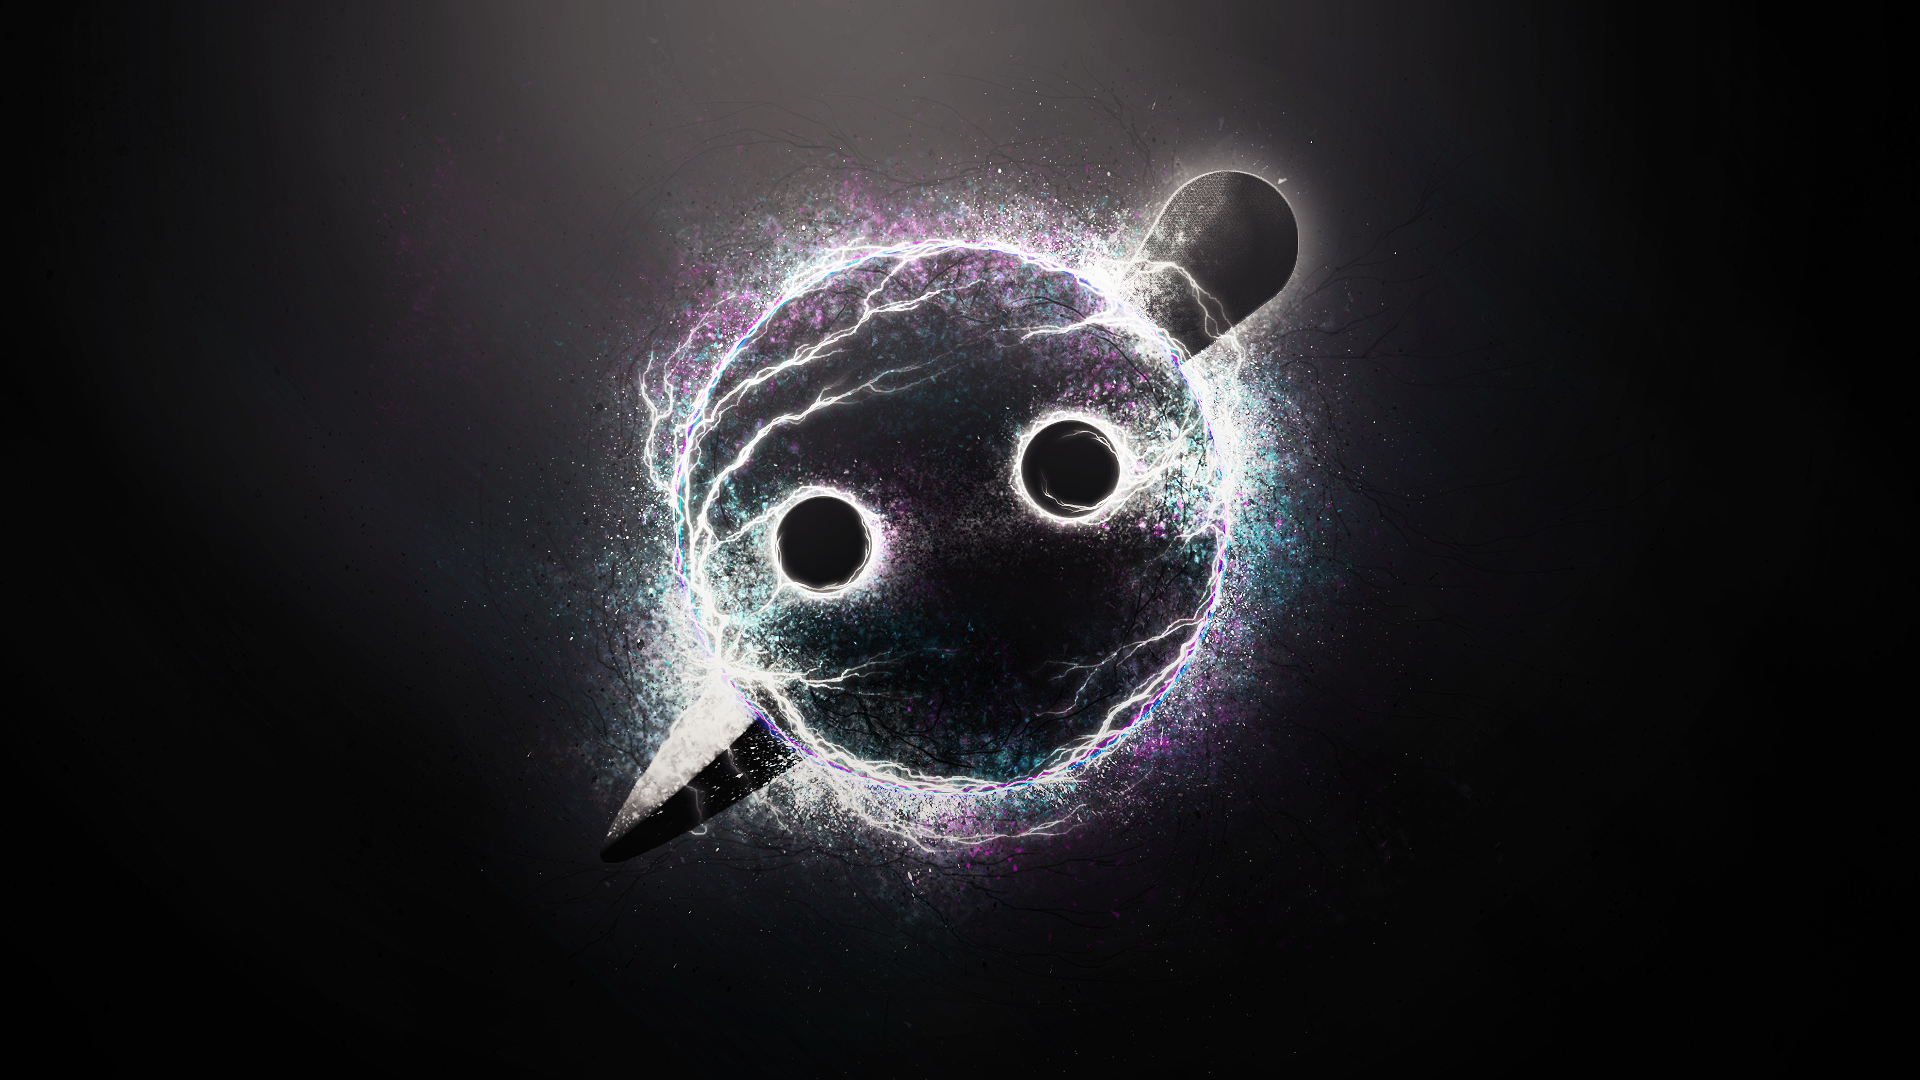 High Resolution Wallpaper   Knife Party 1920x1080 px